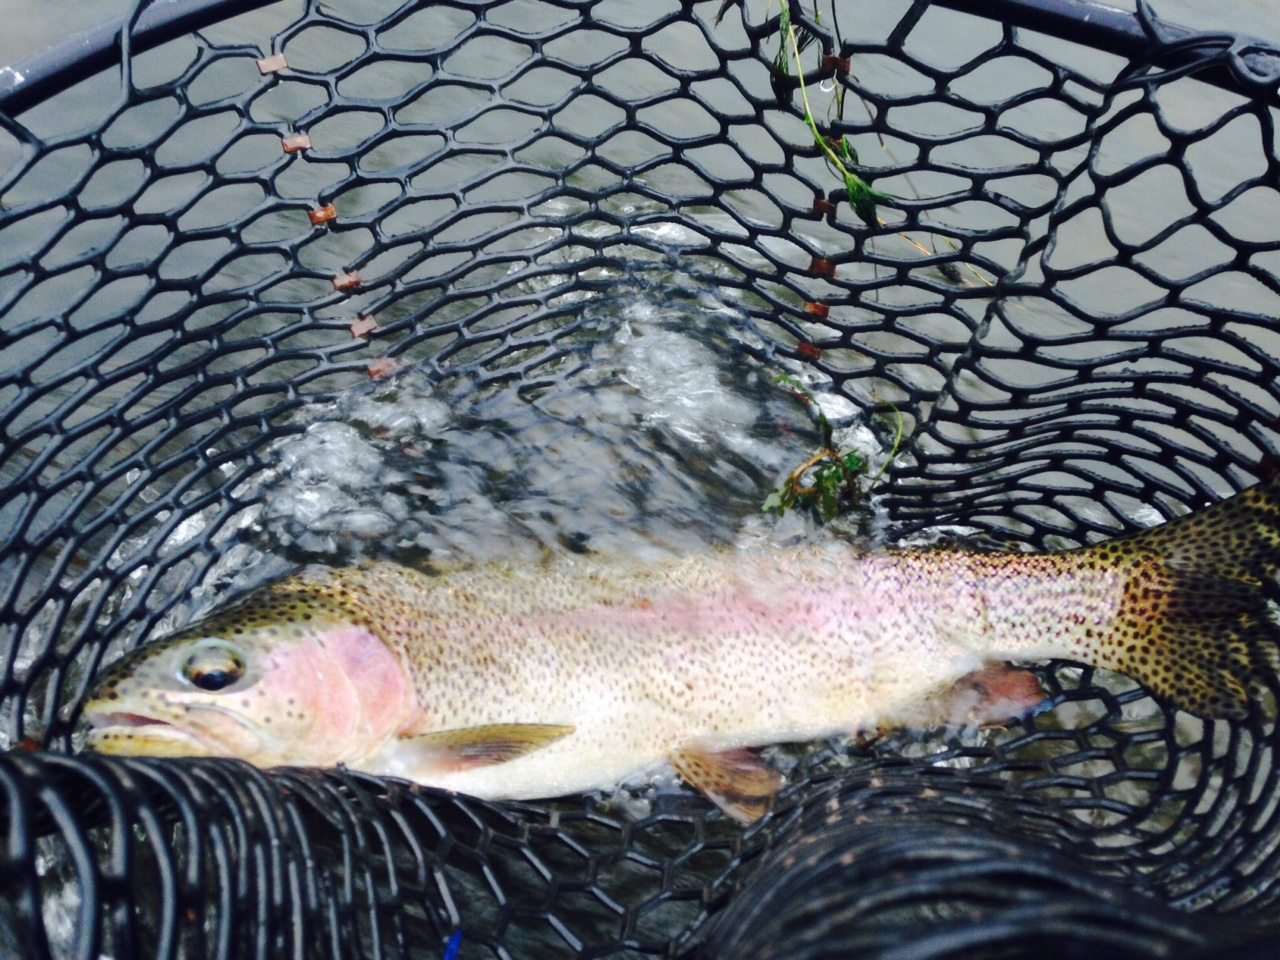 """10/12/15 John G. catches an early A.M. 18"""" Rainbow trout on the West Branch!"""